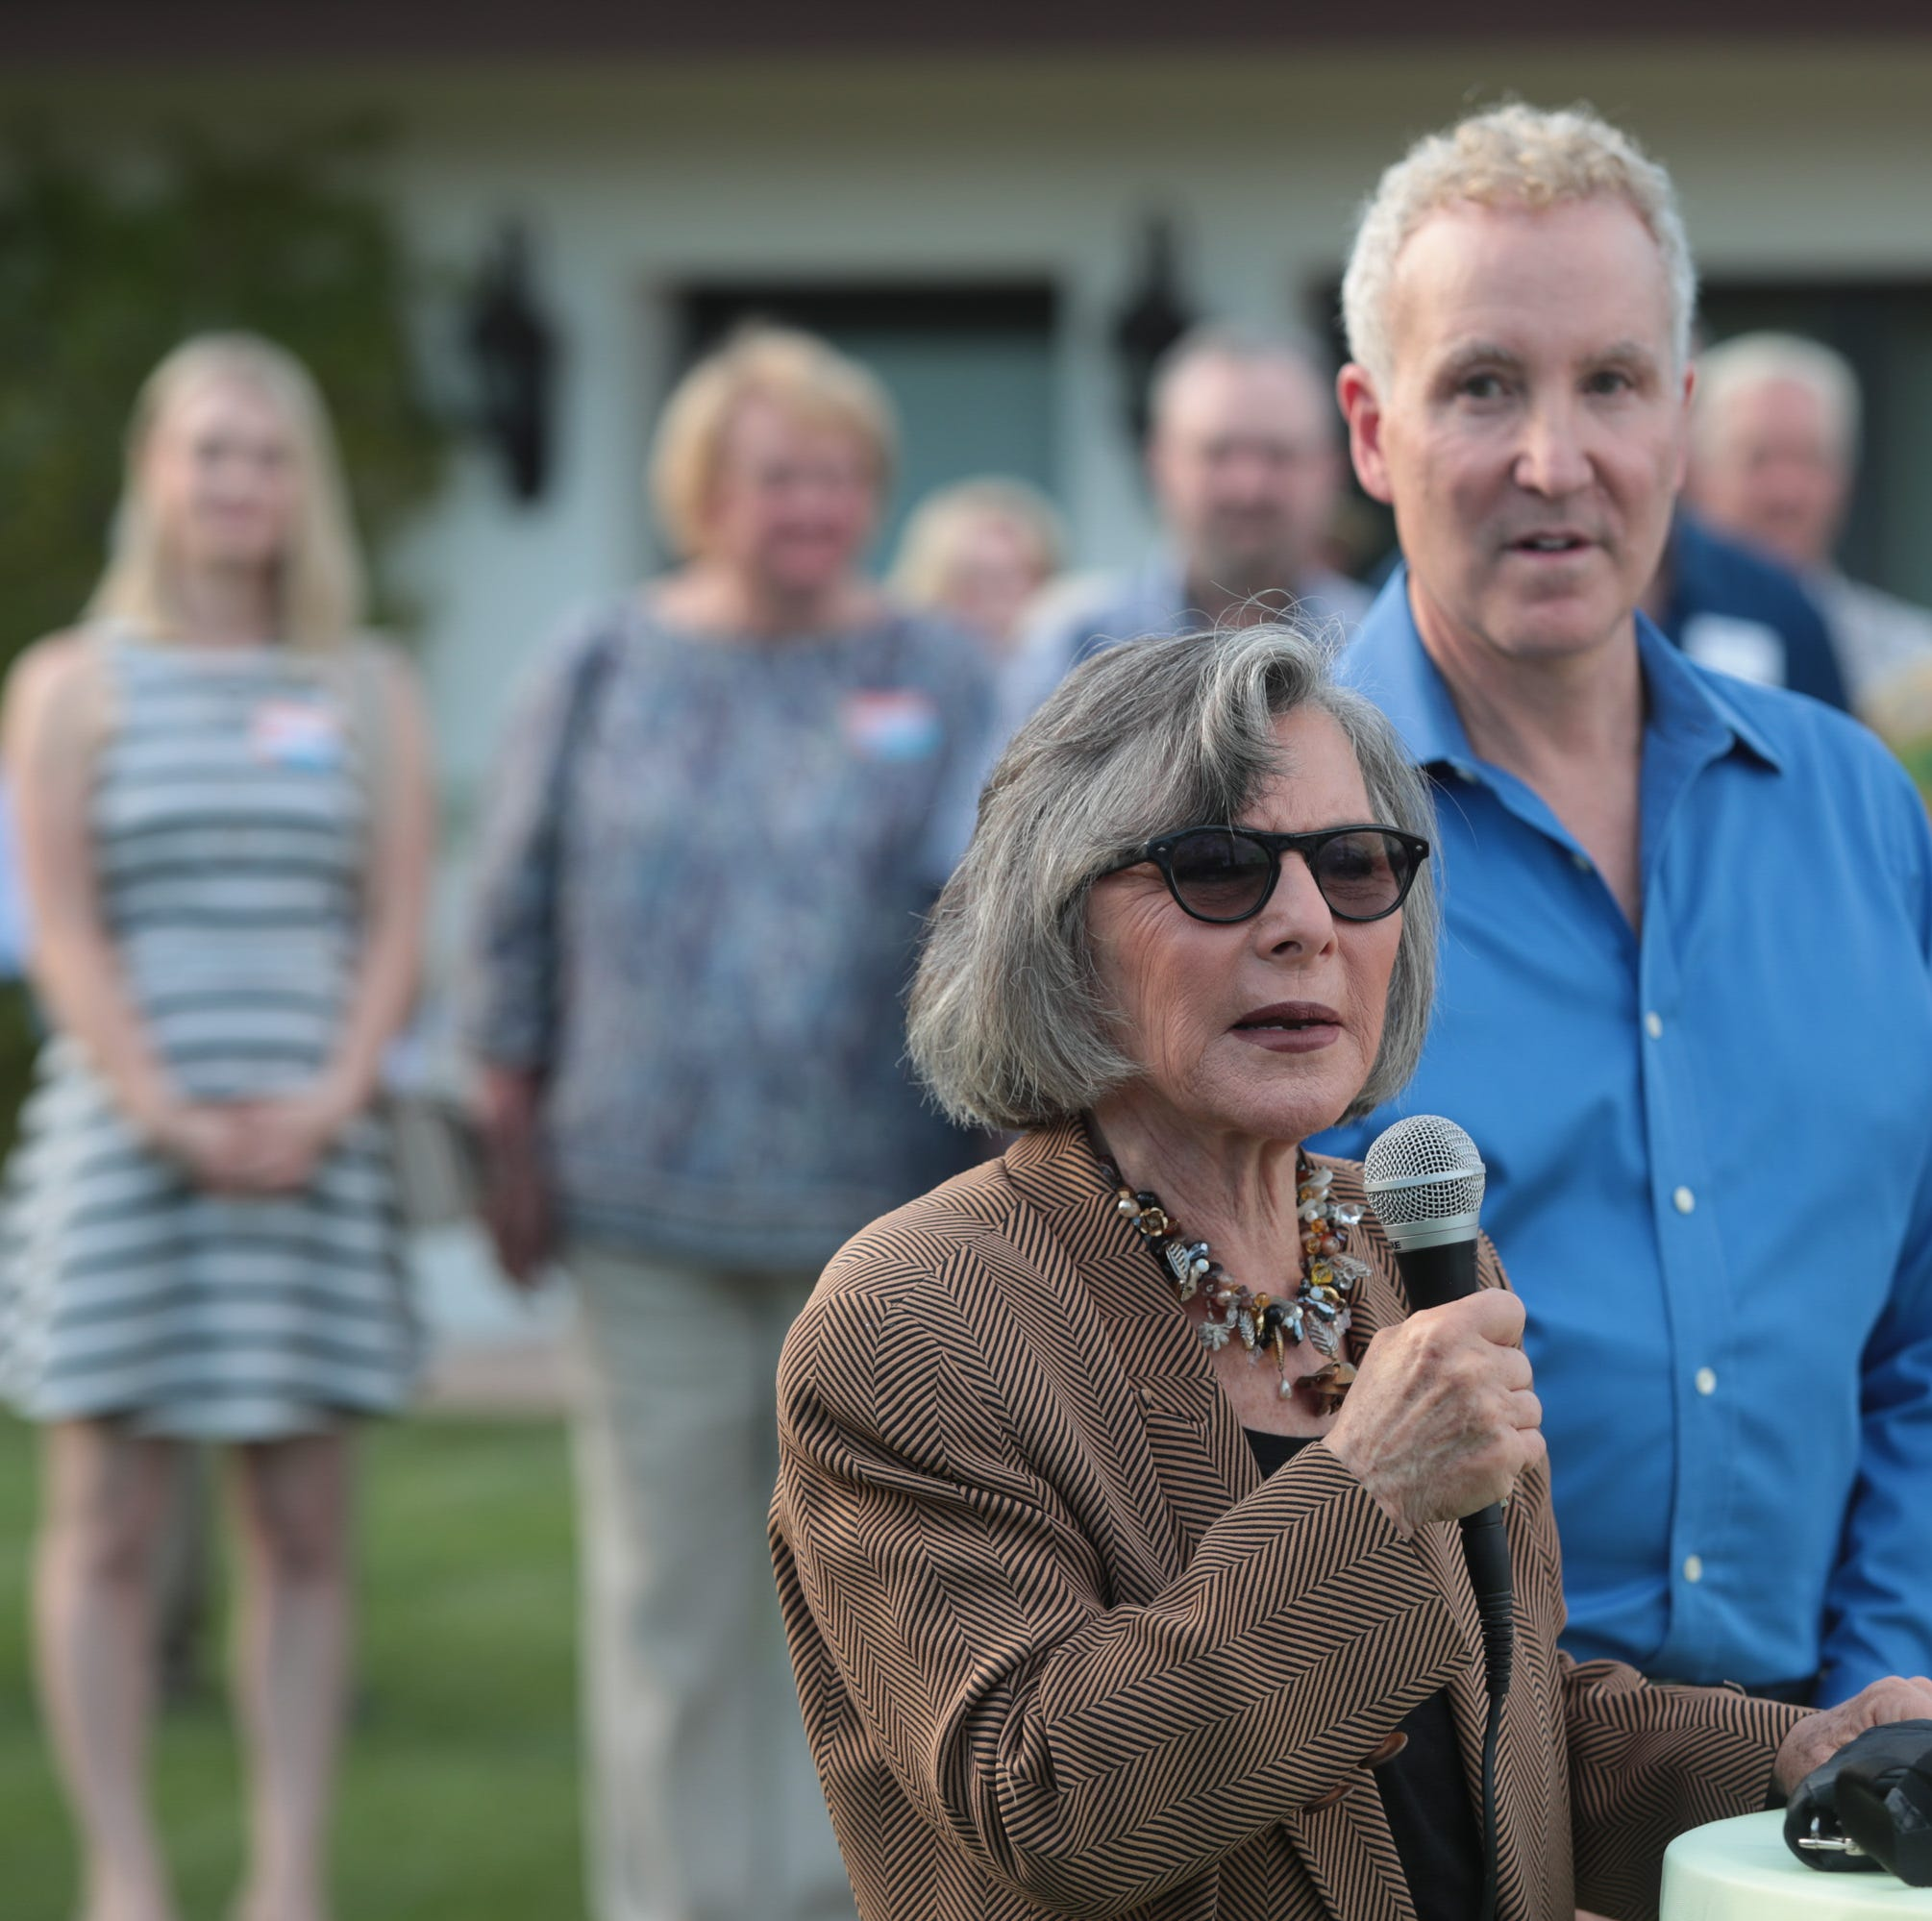 Palm Springs Councilman Geoff Kors welcomes Barbara Boxer at campaign kick-off event